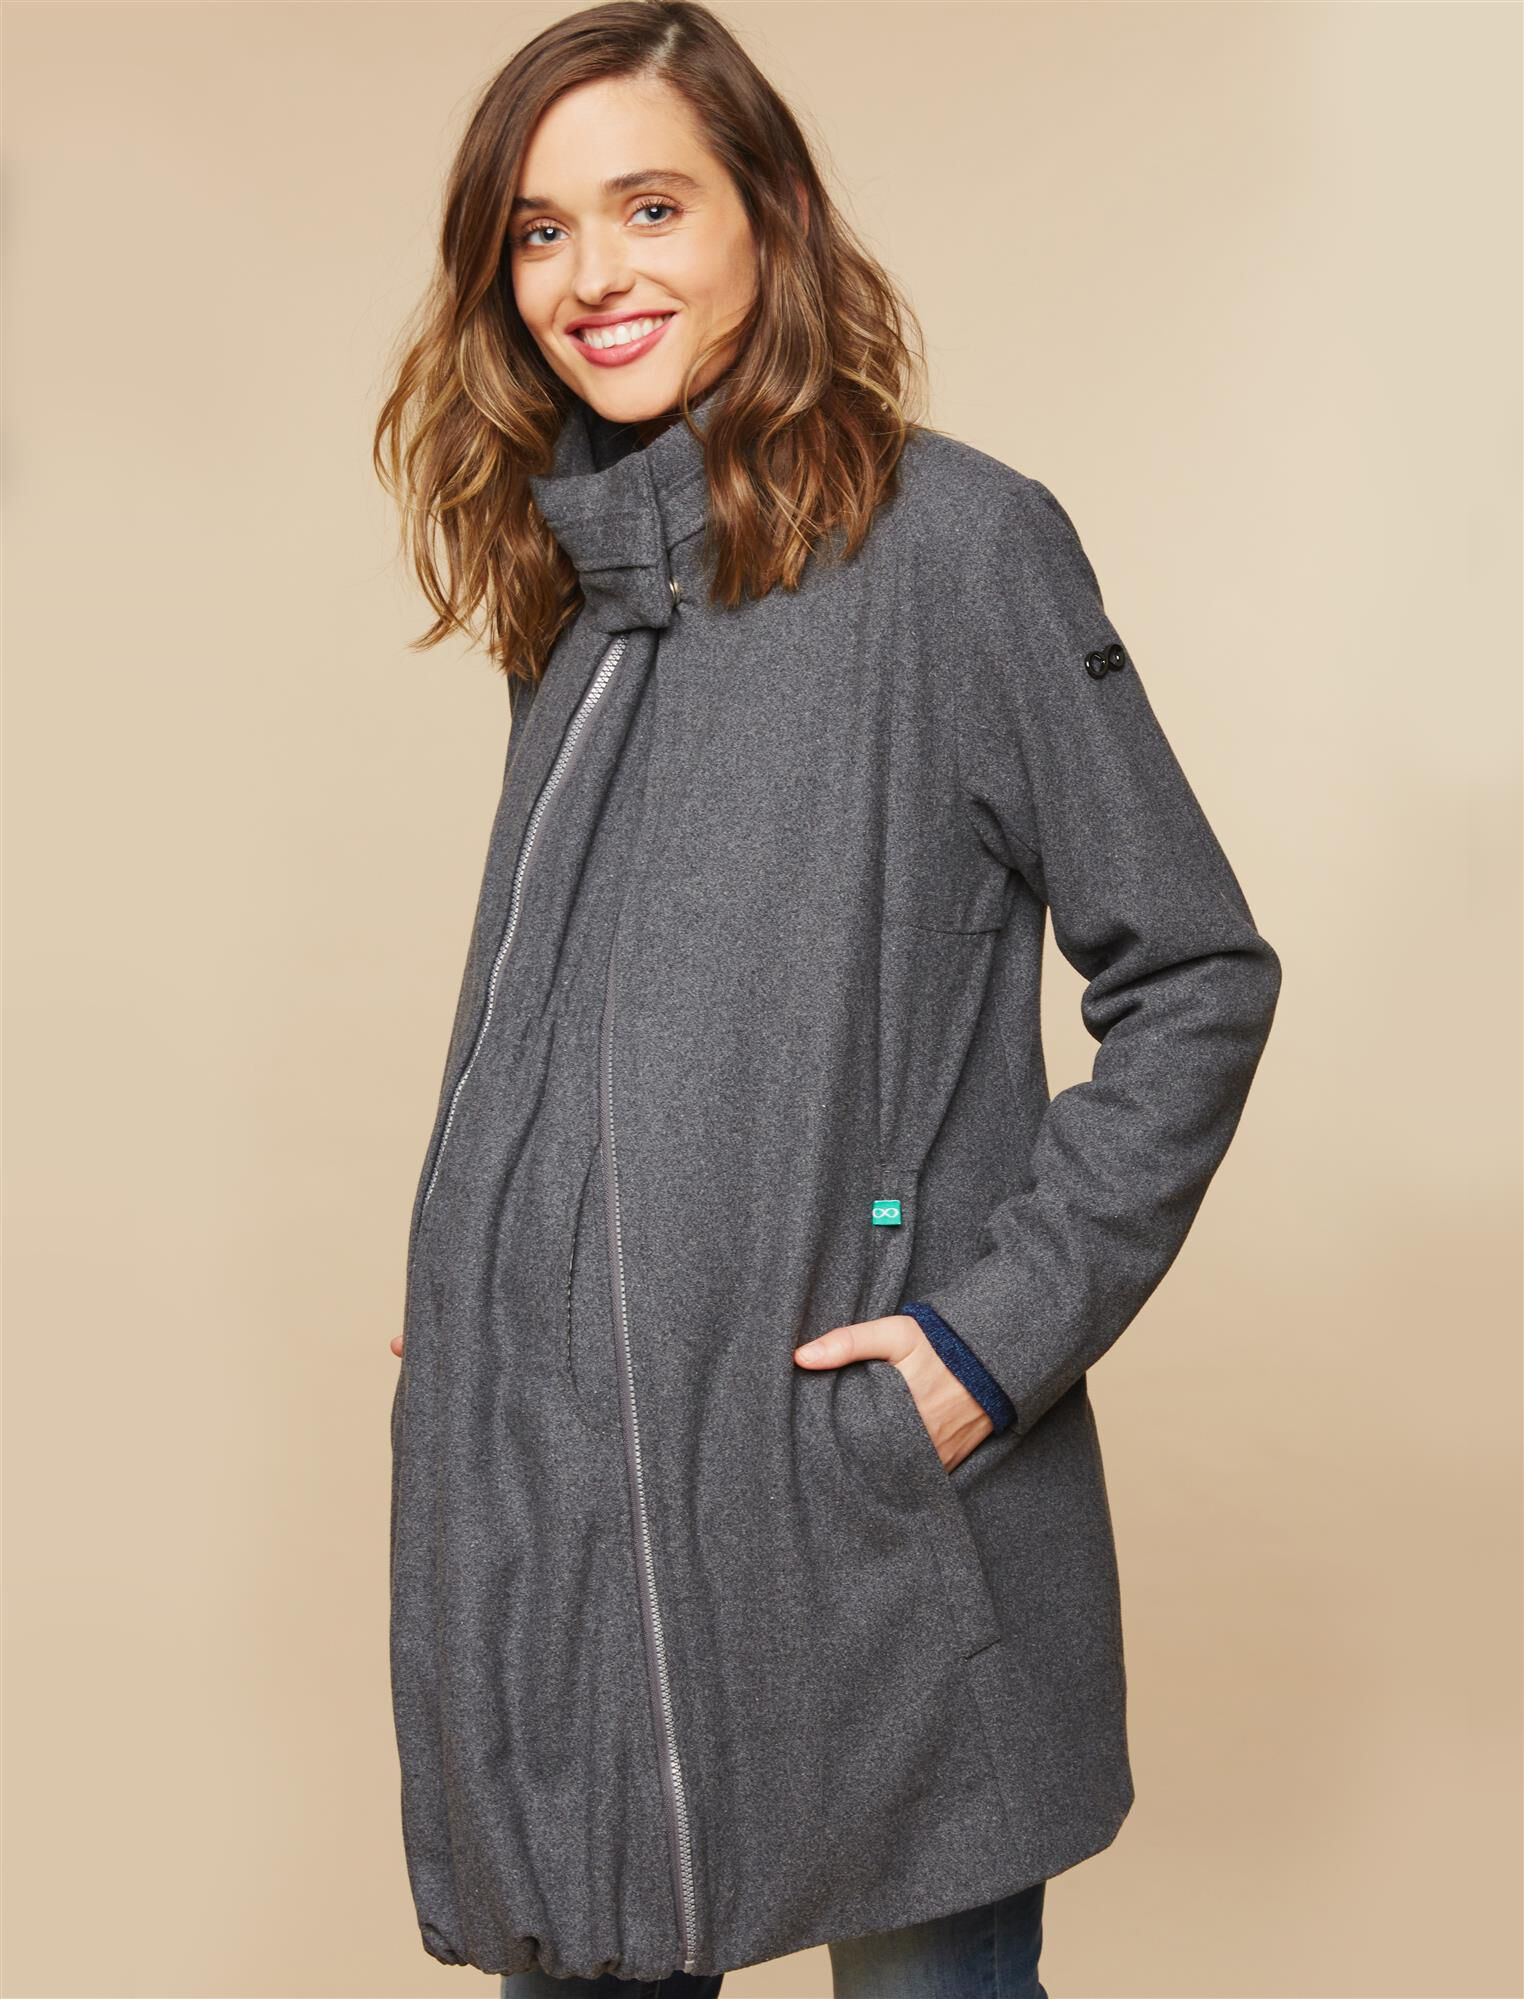 Modern Eternity 3 In 1 Wool Blend Maternity Coat